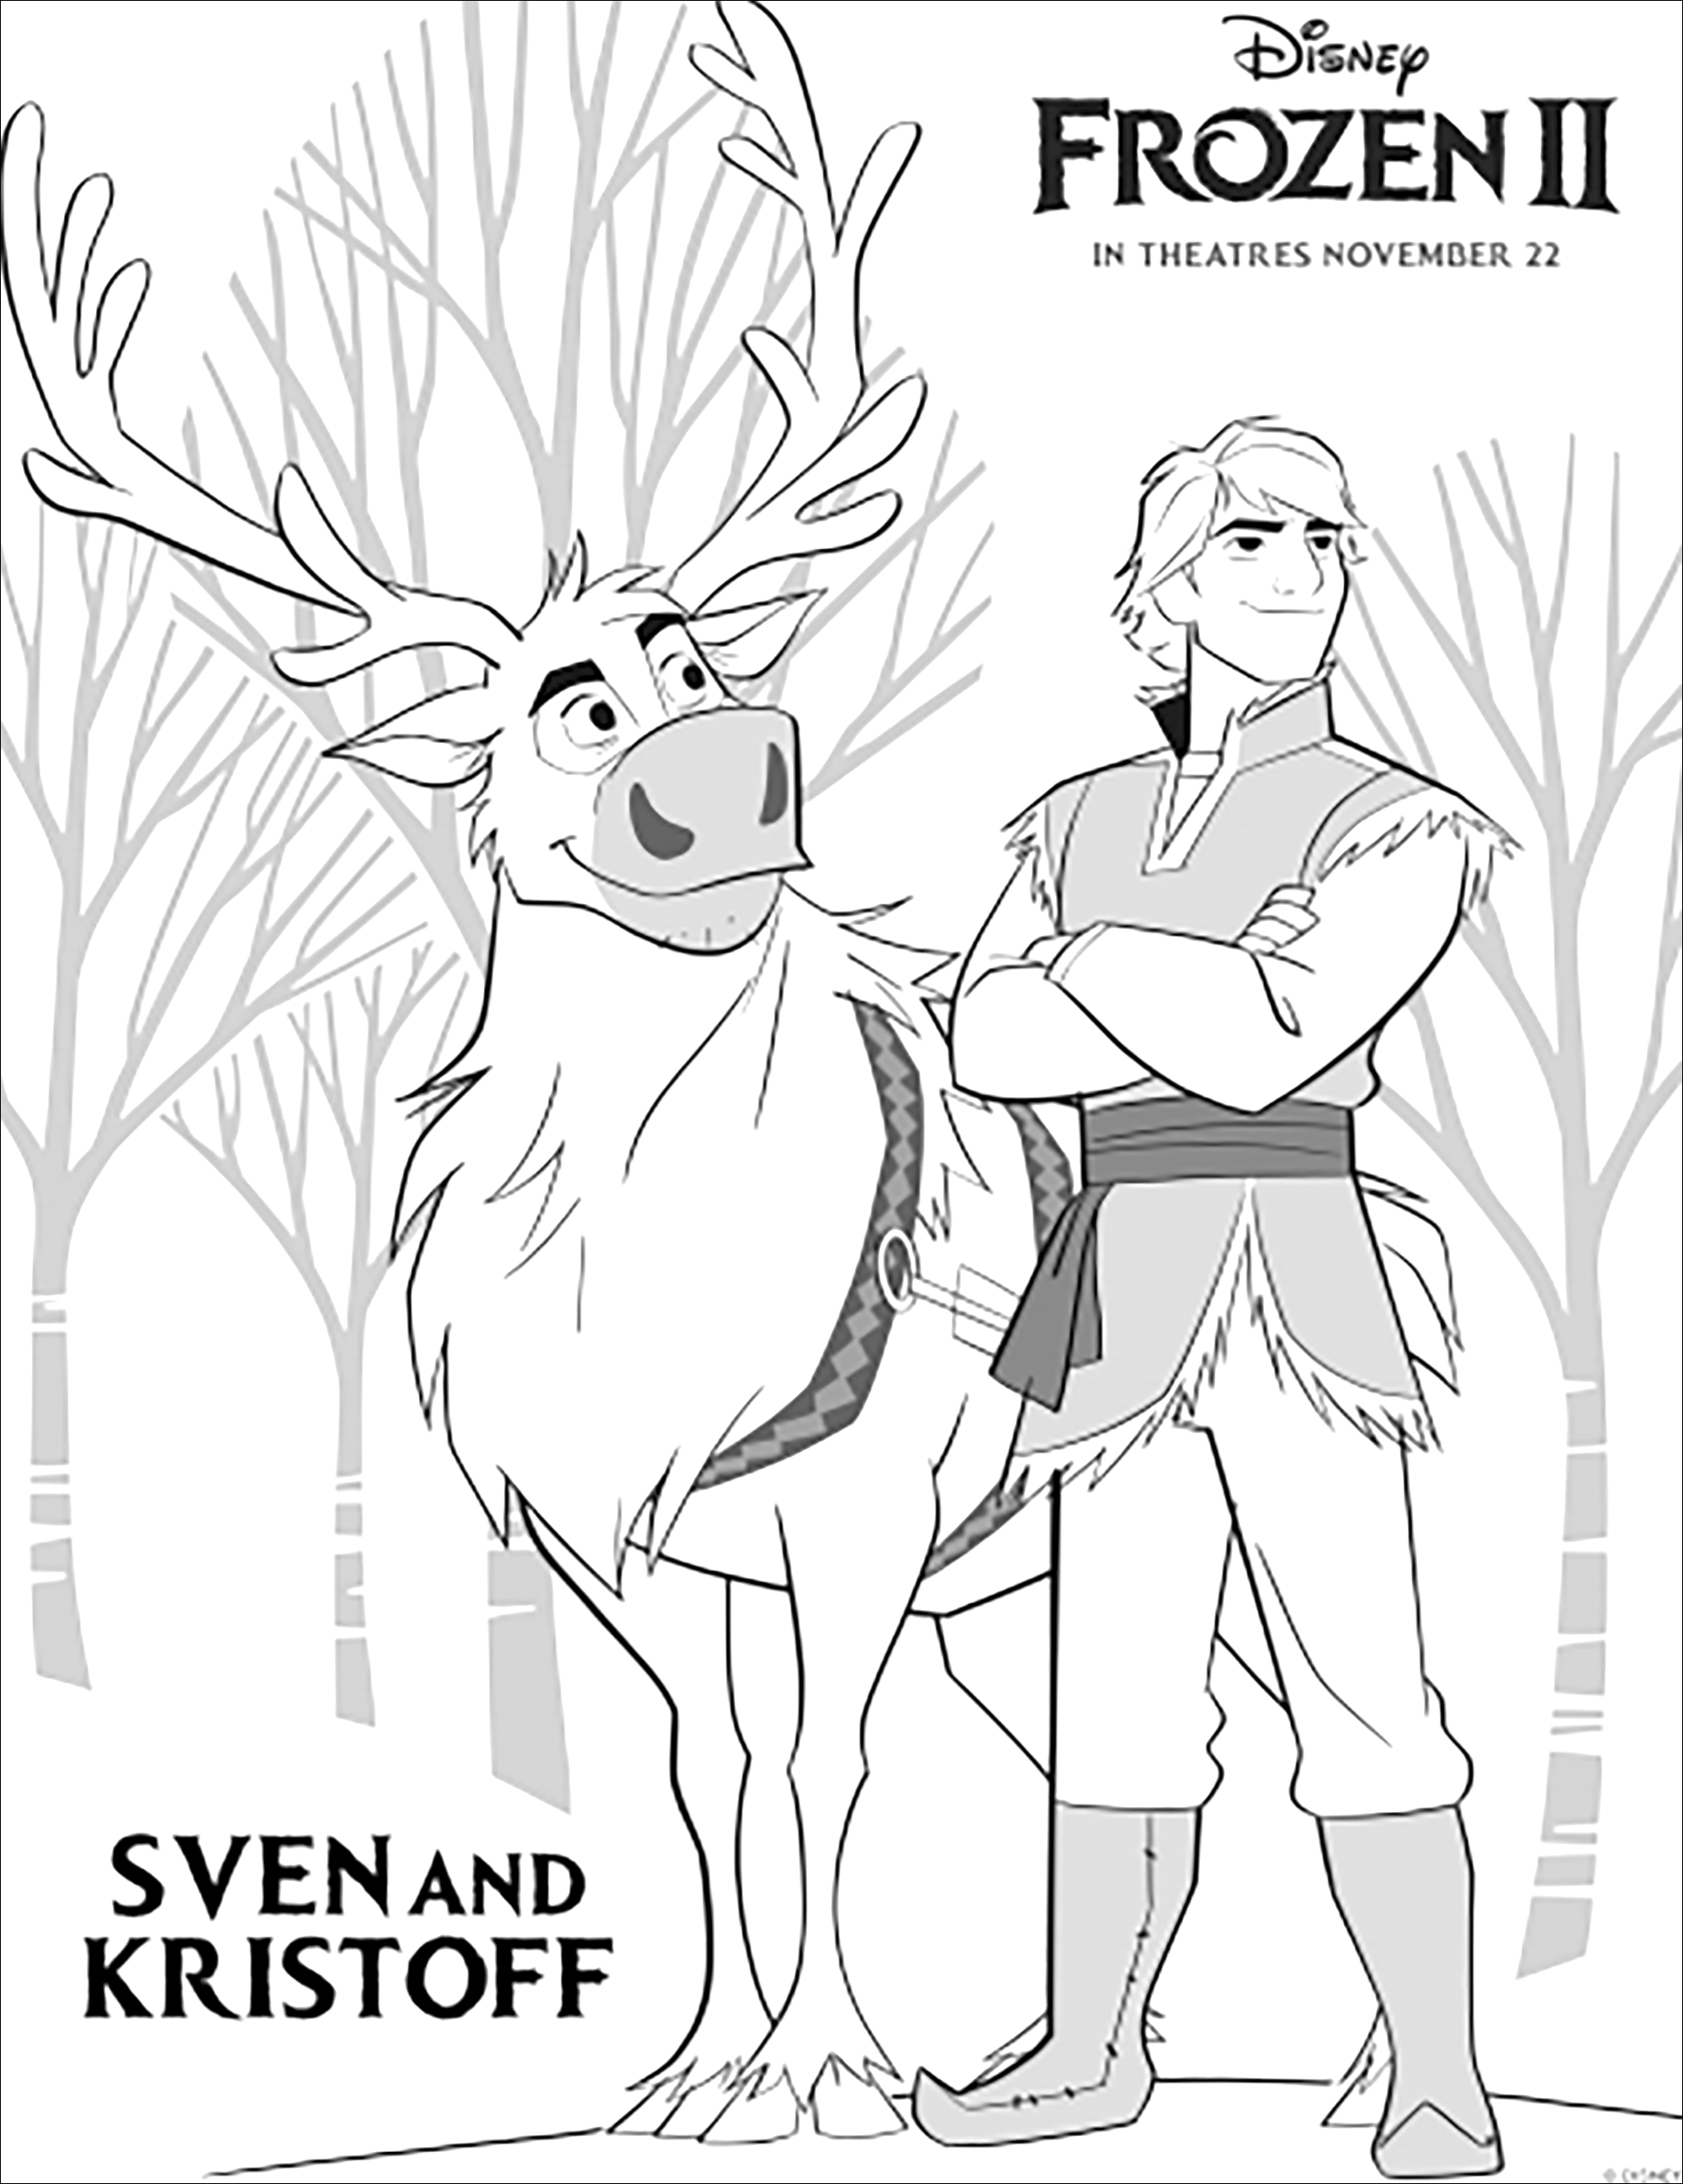 coloring pictures of frozen characters frozen characters drawing at getdrawings free download coloring characters frozen of pictures